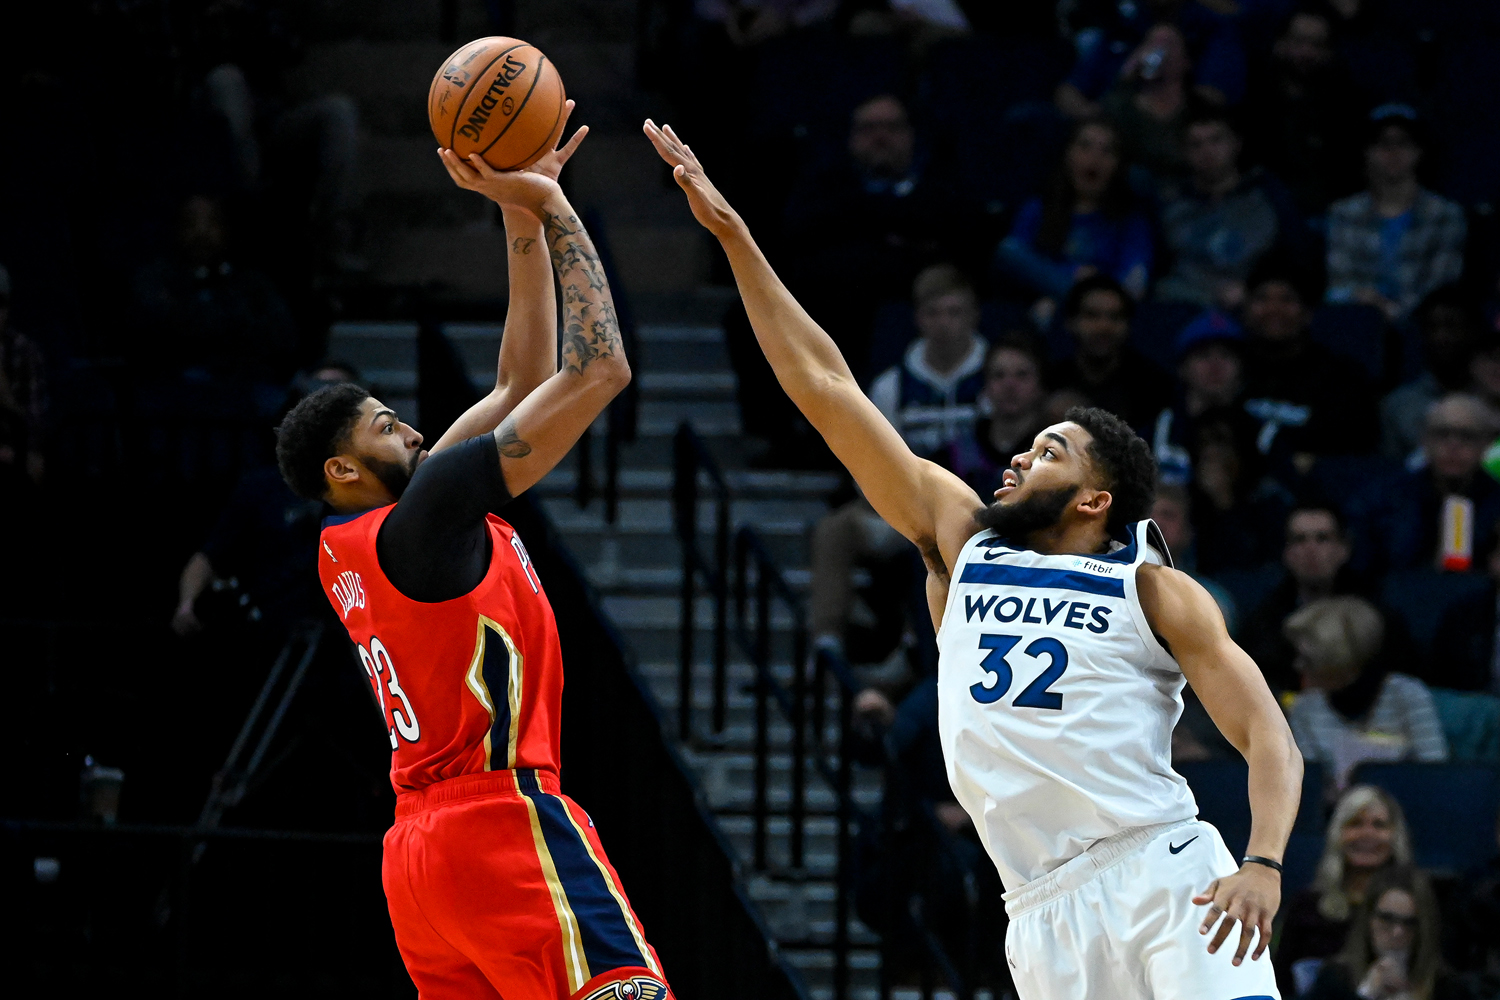 The Minnesota Timberwolves' Karl-Anthony Towns (32) pressures a 3-point attempt by the New Orleans Pelicans' Anthony Davis (23) in the first half on Wednesday, Nov. 14, 2018, at Target Center in Minneapolis.